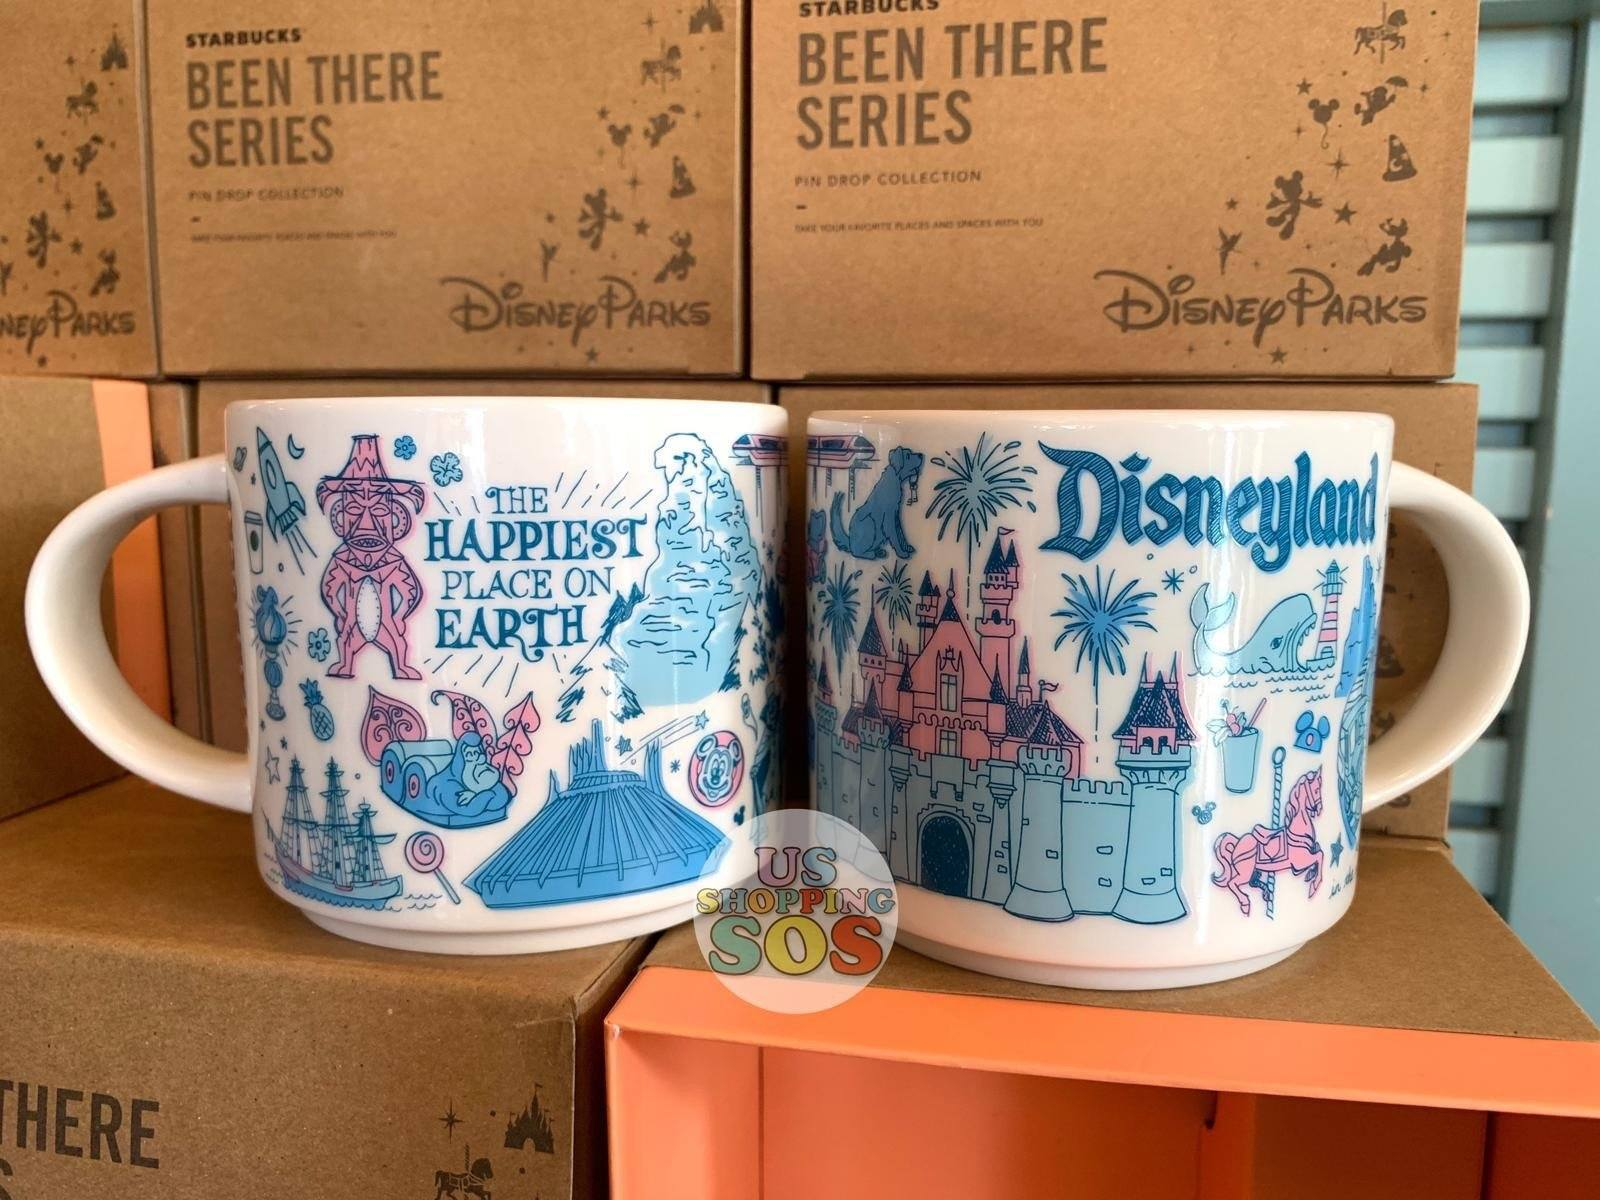 DLR - Starbucks x Disneyland Park Been There Series Mug